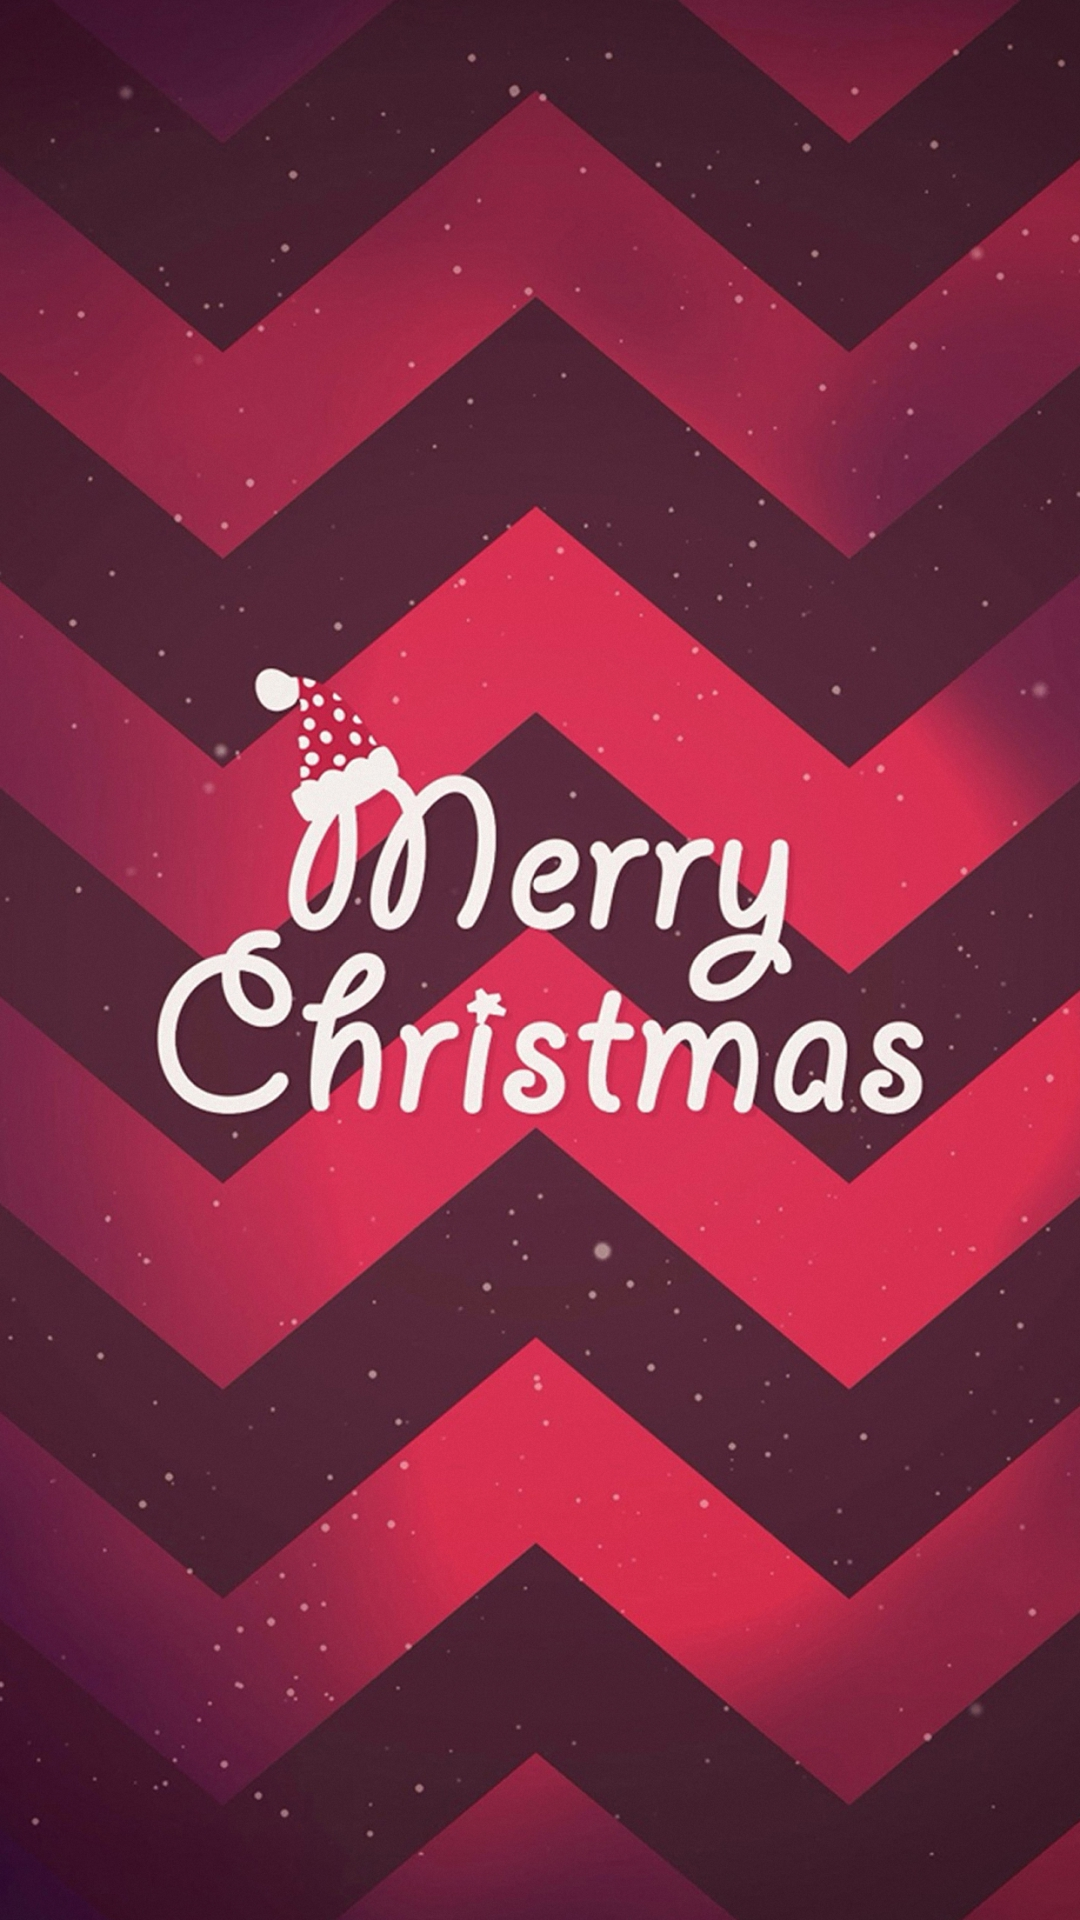 merry christmas background 1080x1920 1080x1920